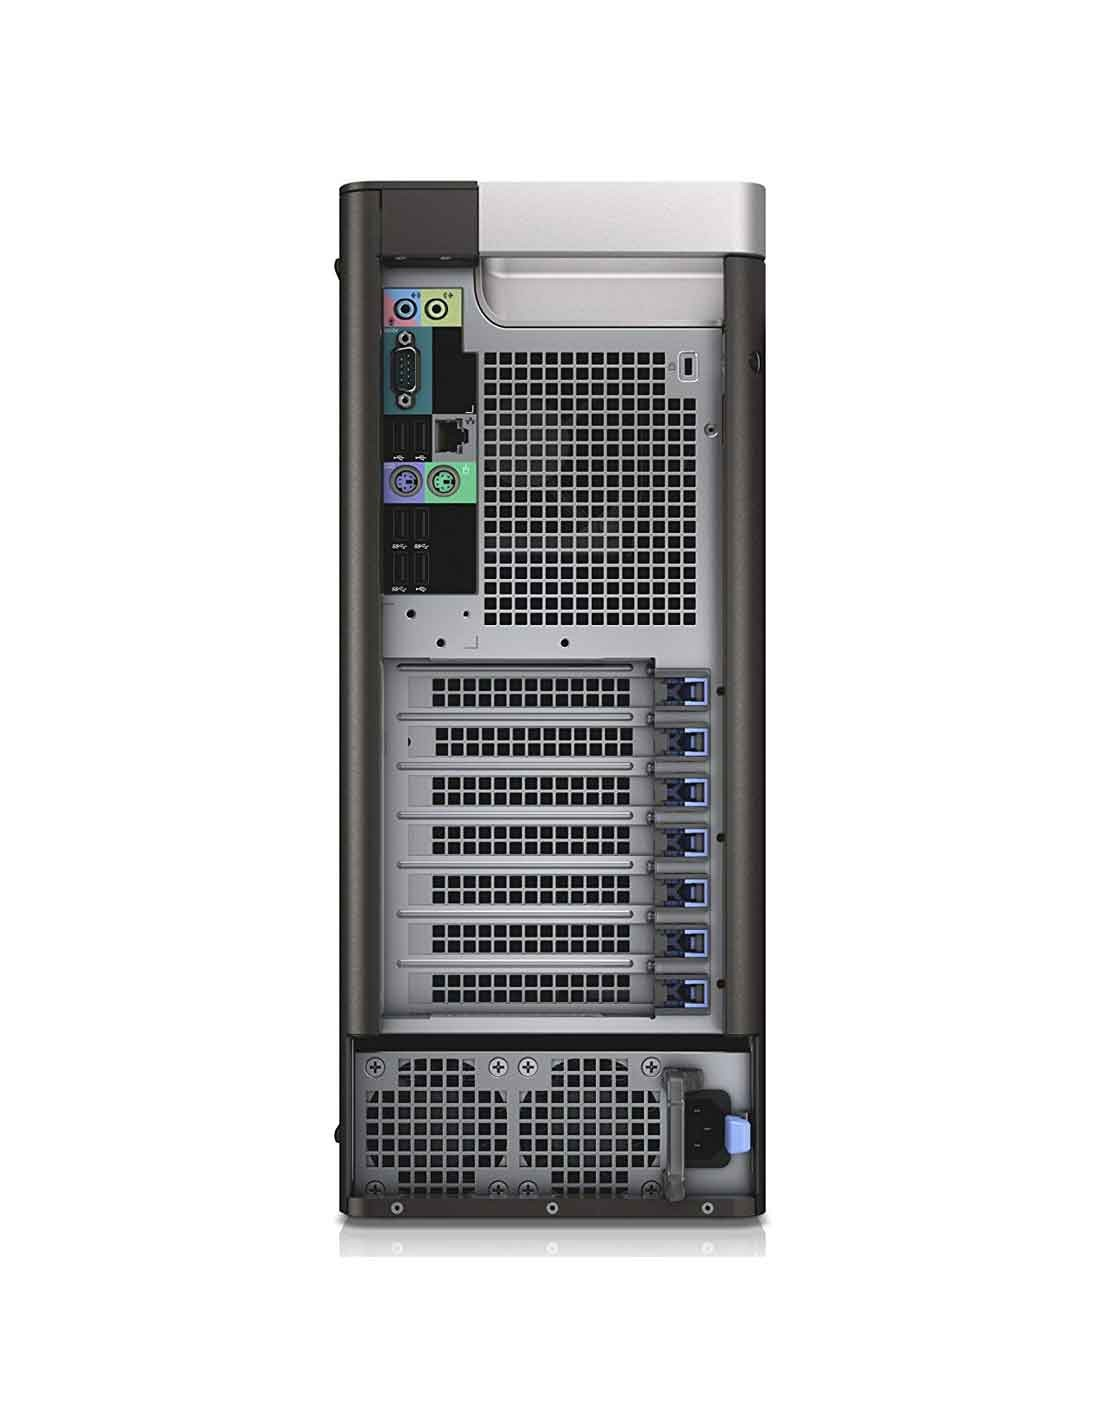 Dell Precision T5810 Tower 16GB images and photos in Dubai, UAE